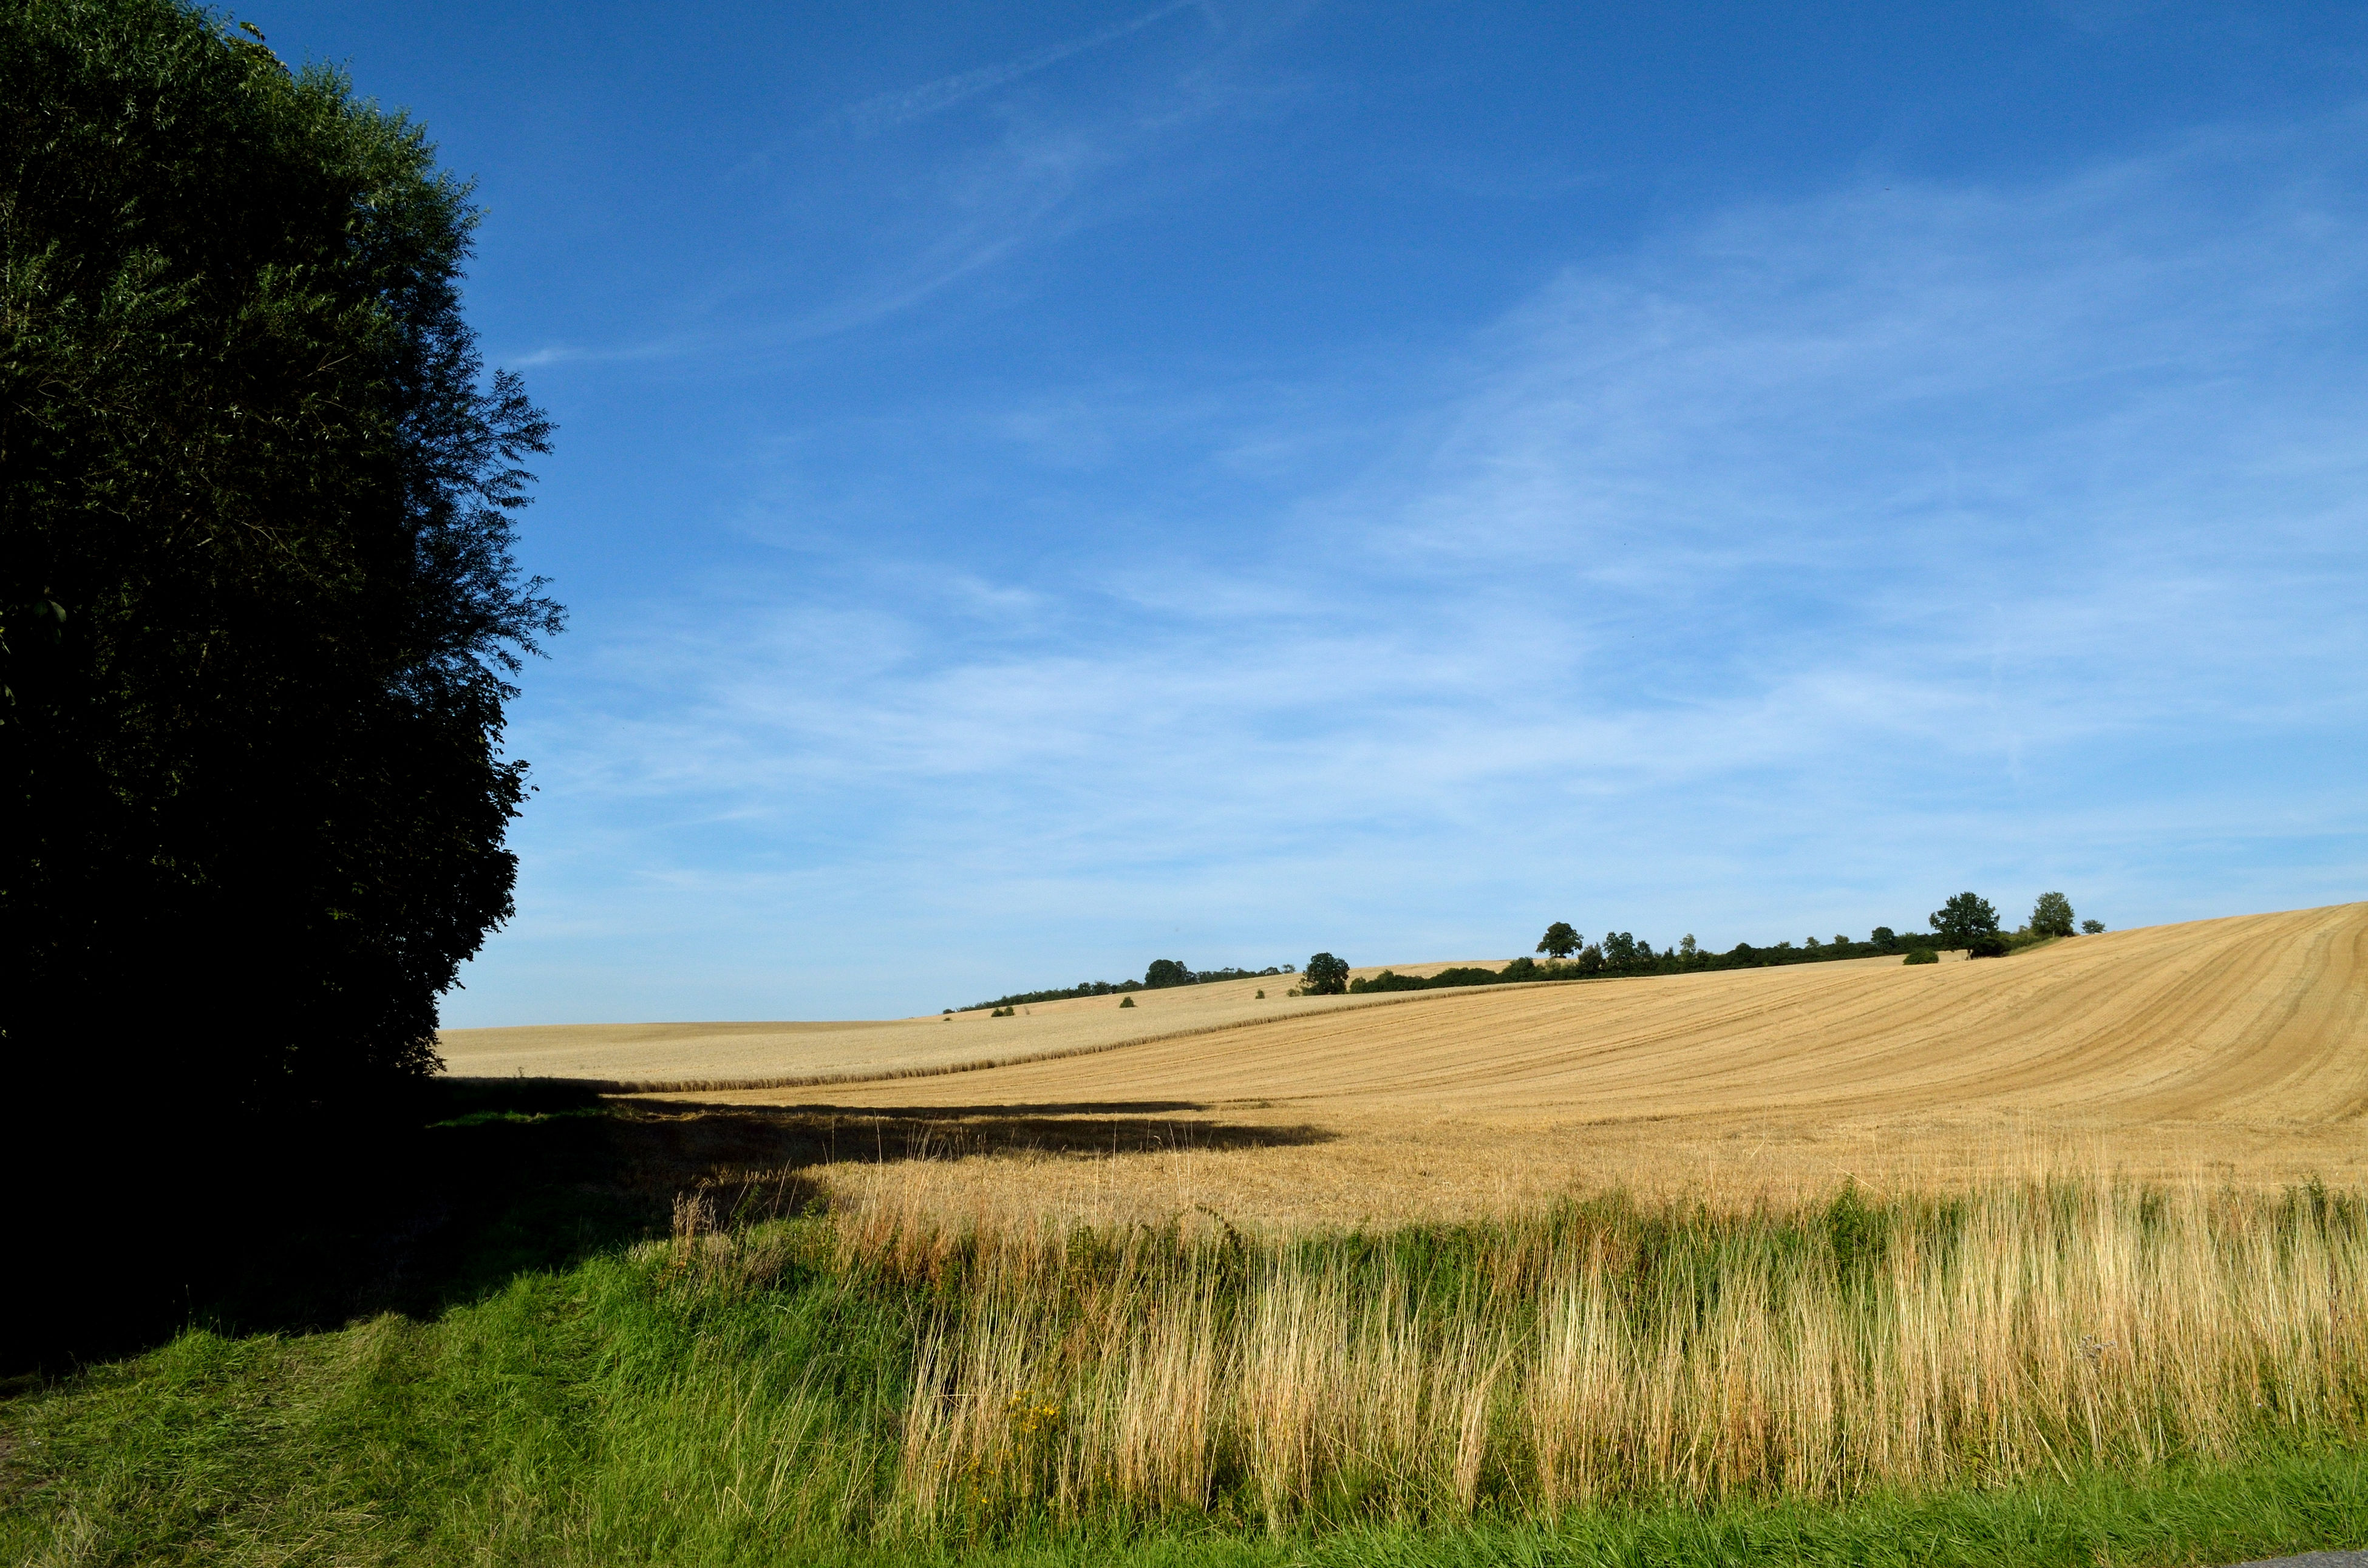 sky, farm, agriculture, rural scene, nature, beauty in nature, landscape, field, growth, no people, tranquility, tree, tranquil scene, scenics, day, outdoors, animal themes, tractor, mammal